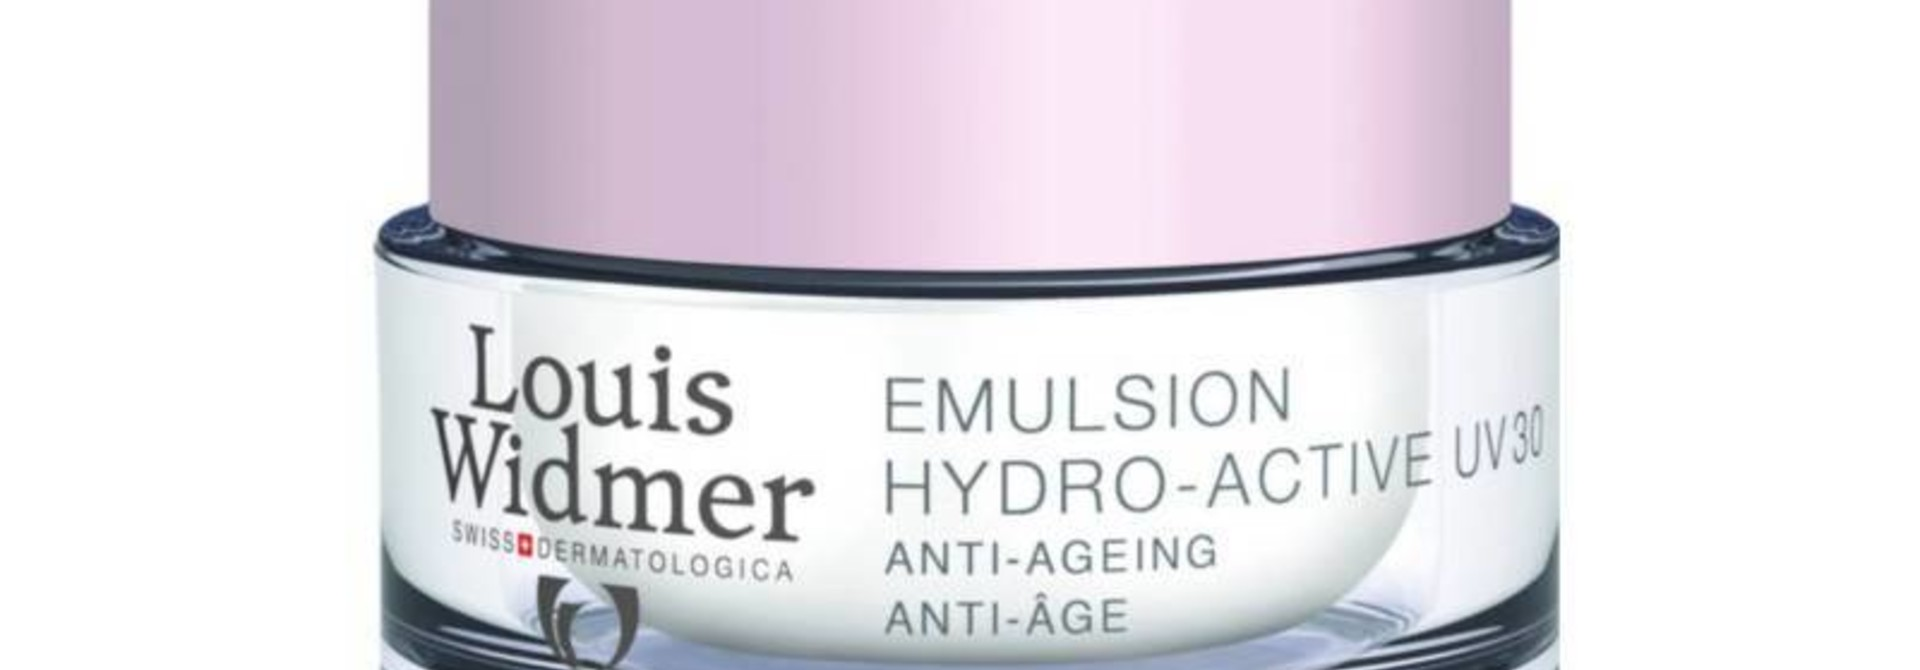 Emulsion Hydro-Active UV 30 50 ml licht geparfumeerd